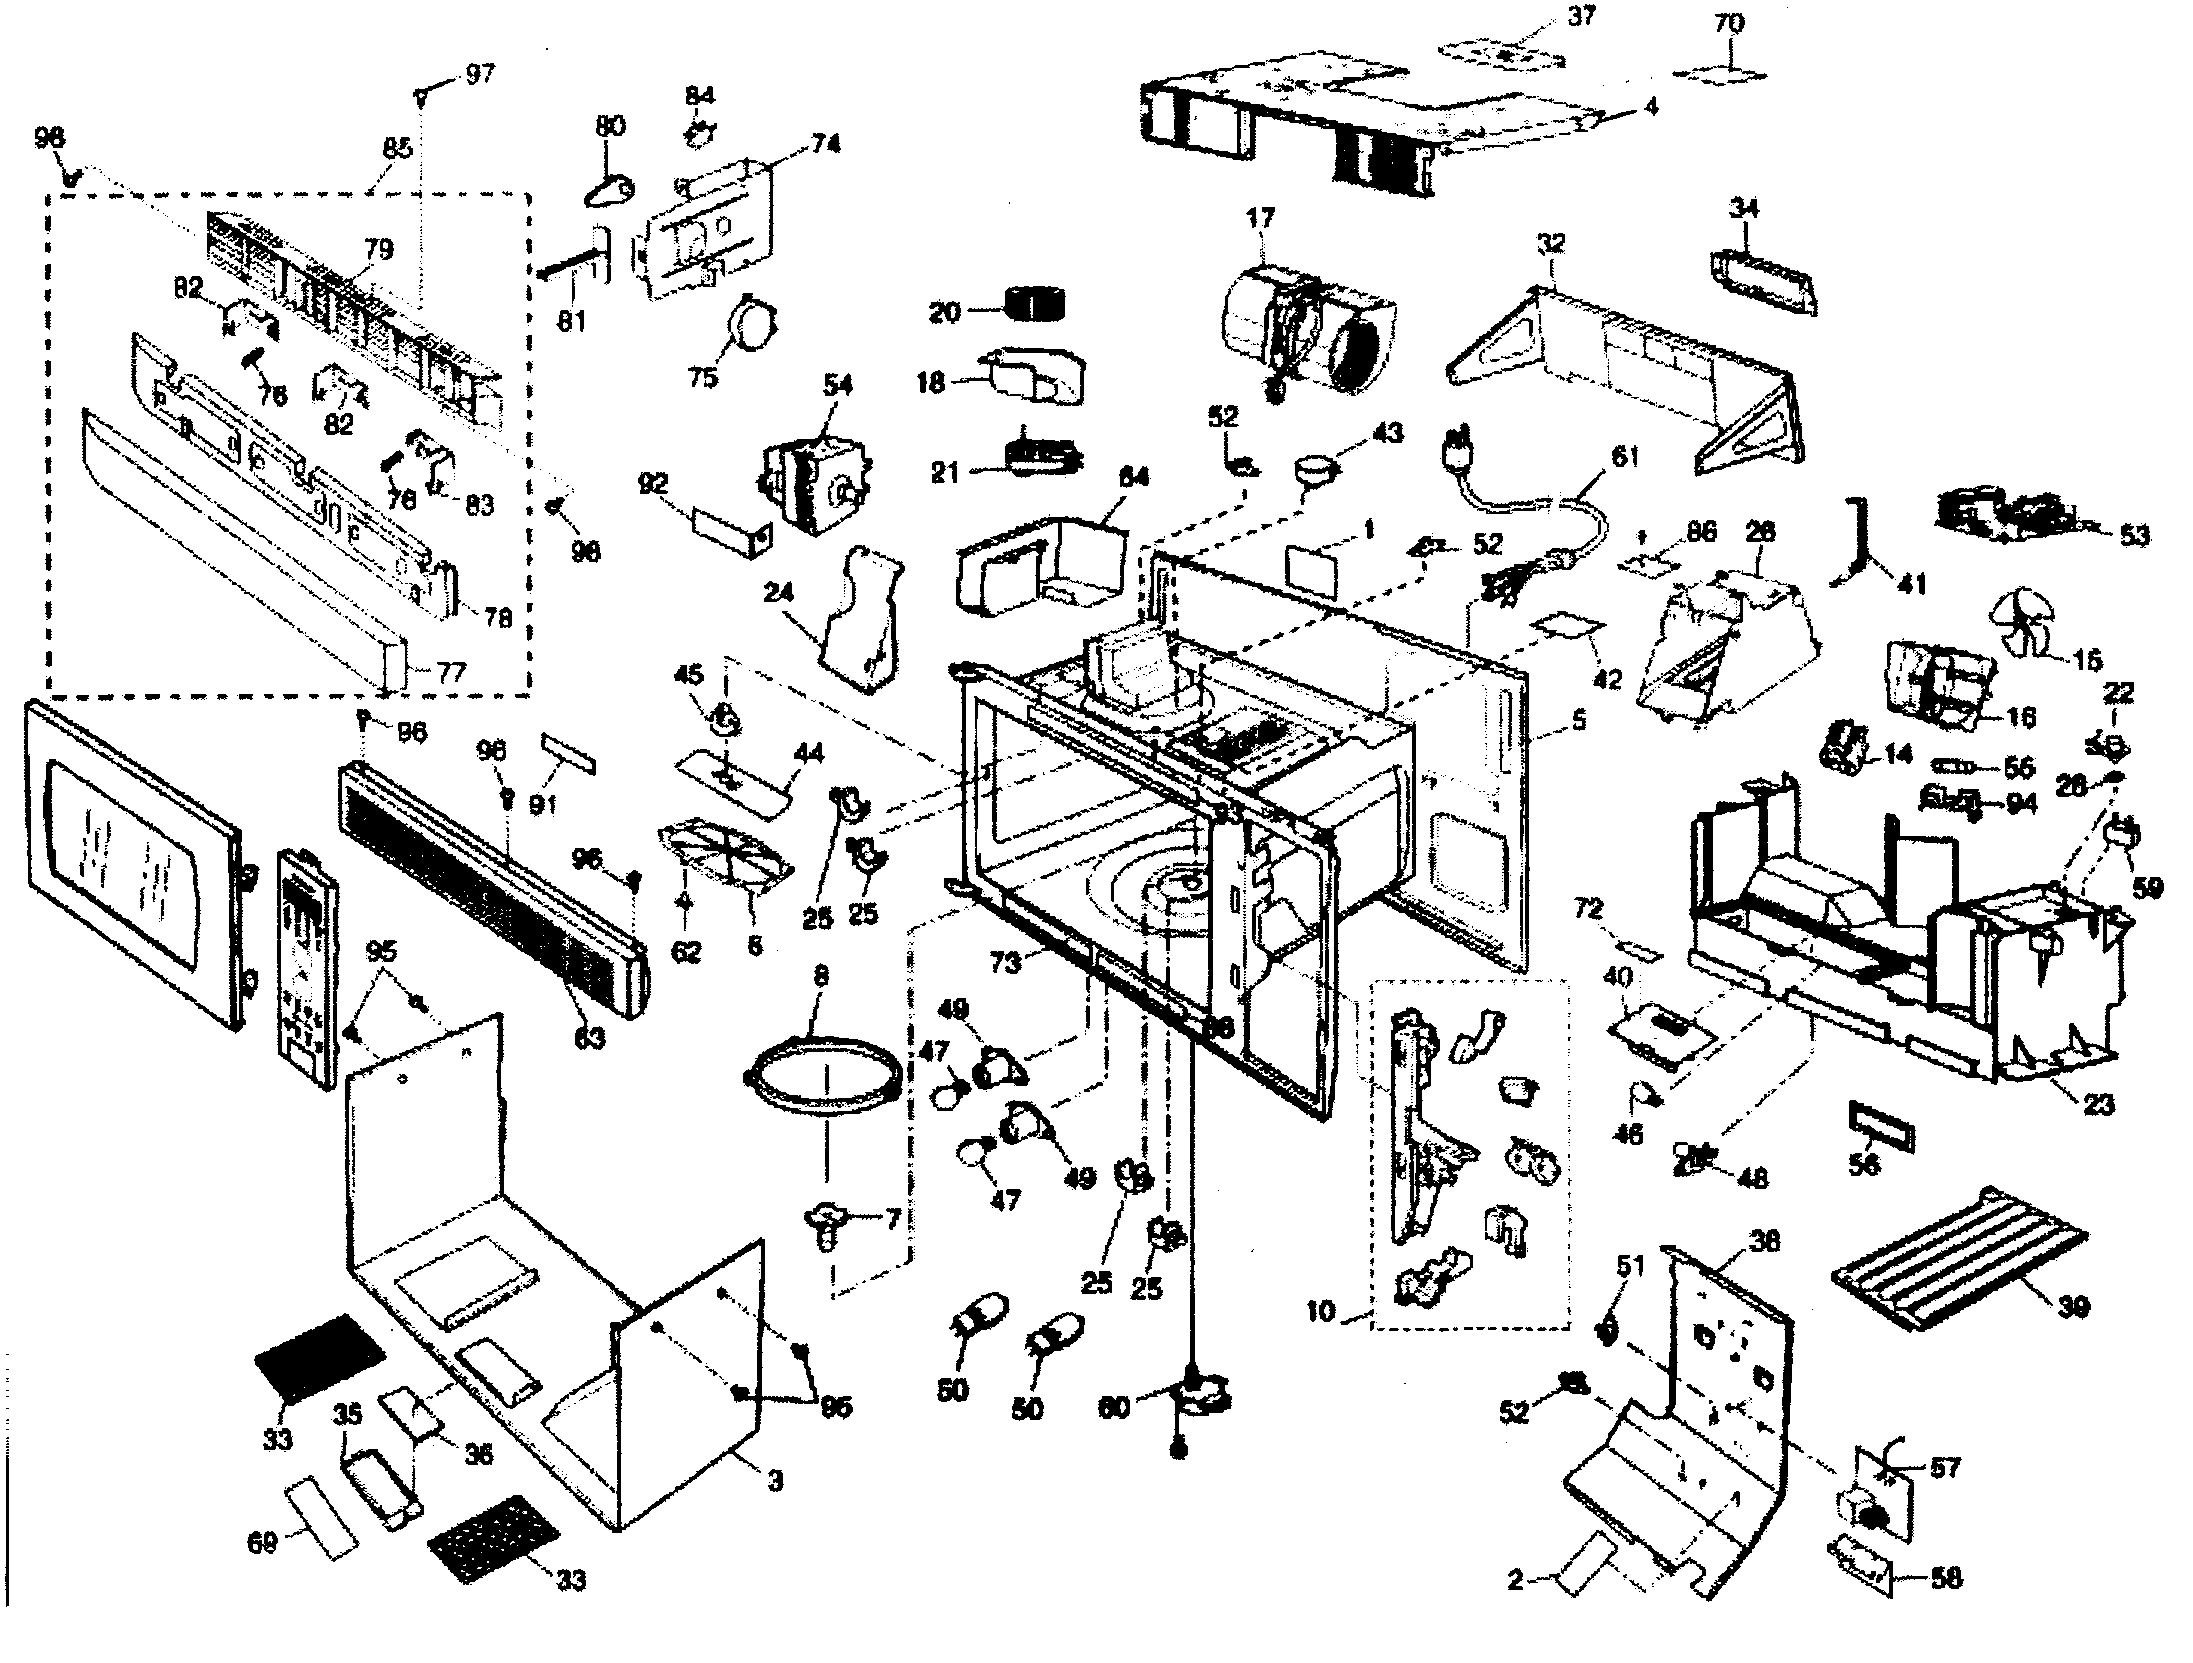 microwave parts diagram and parts list for panasonic microwaveparts